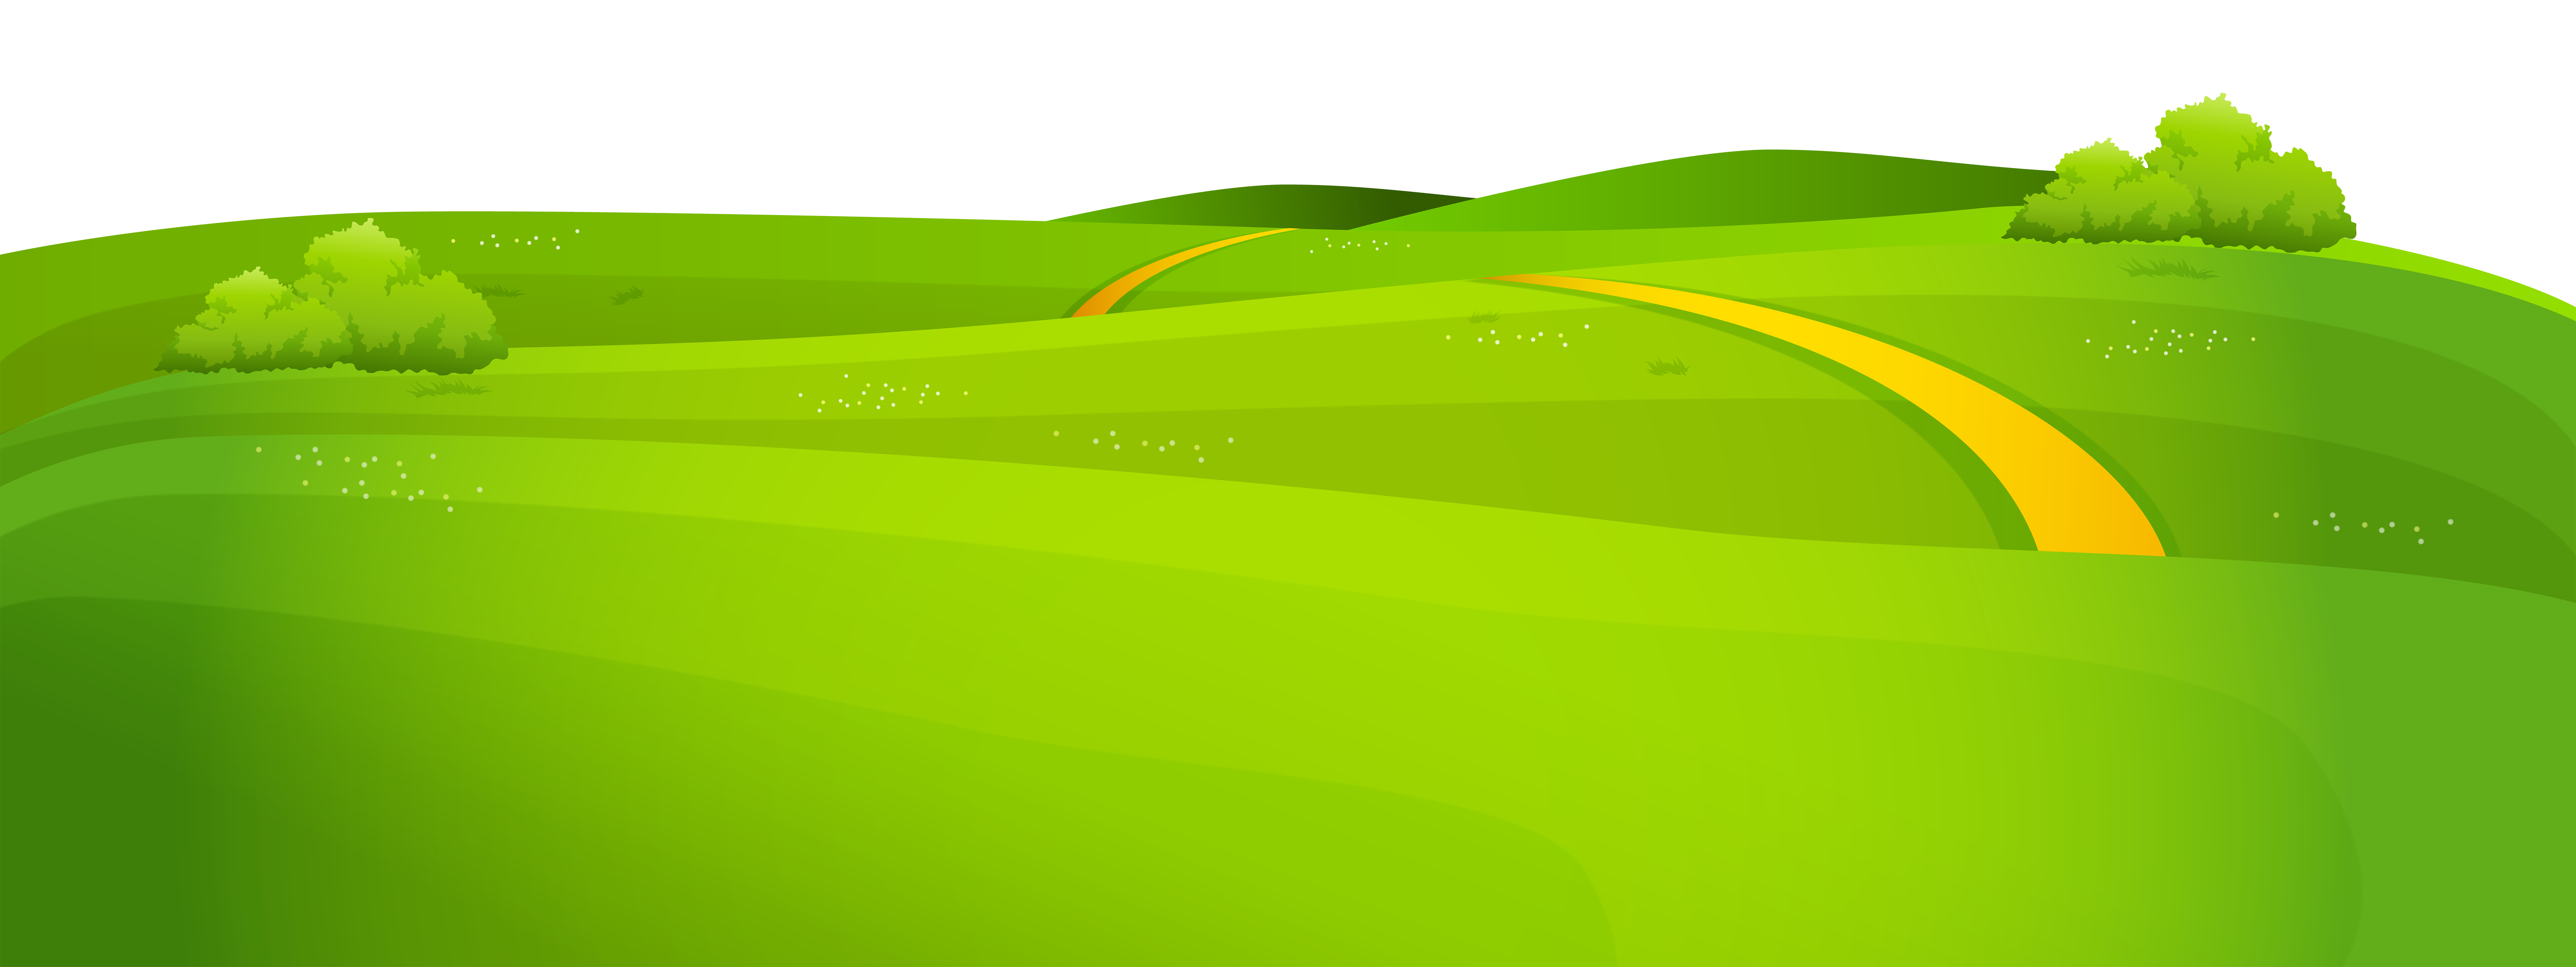 Grass hill png. Spring cover clip art